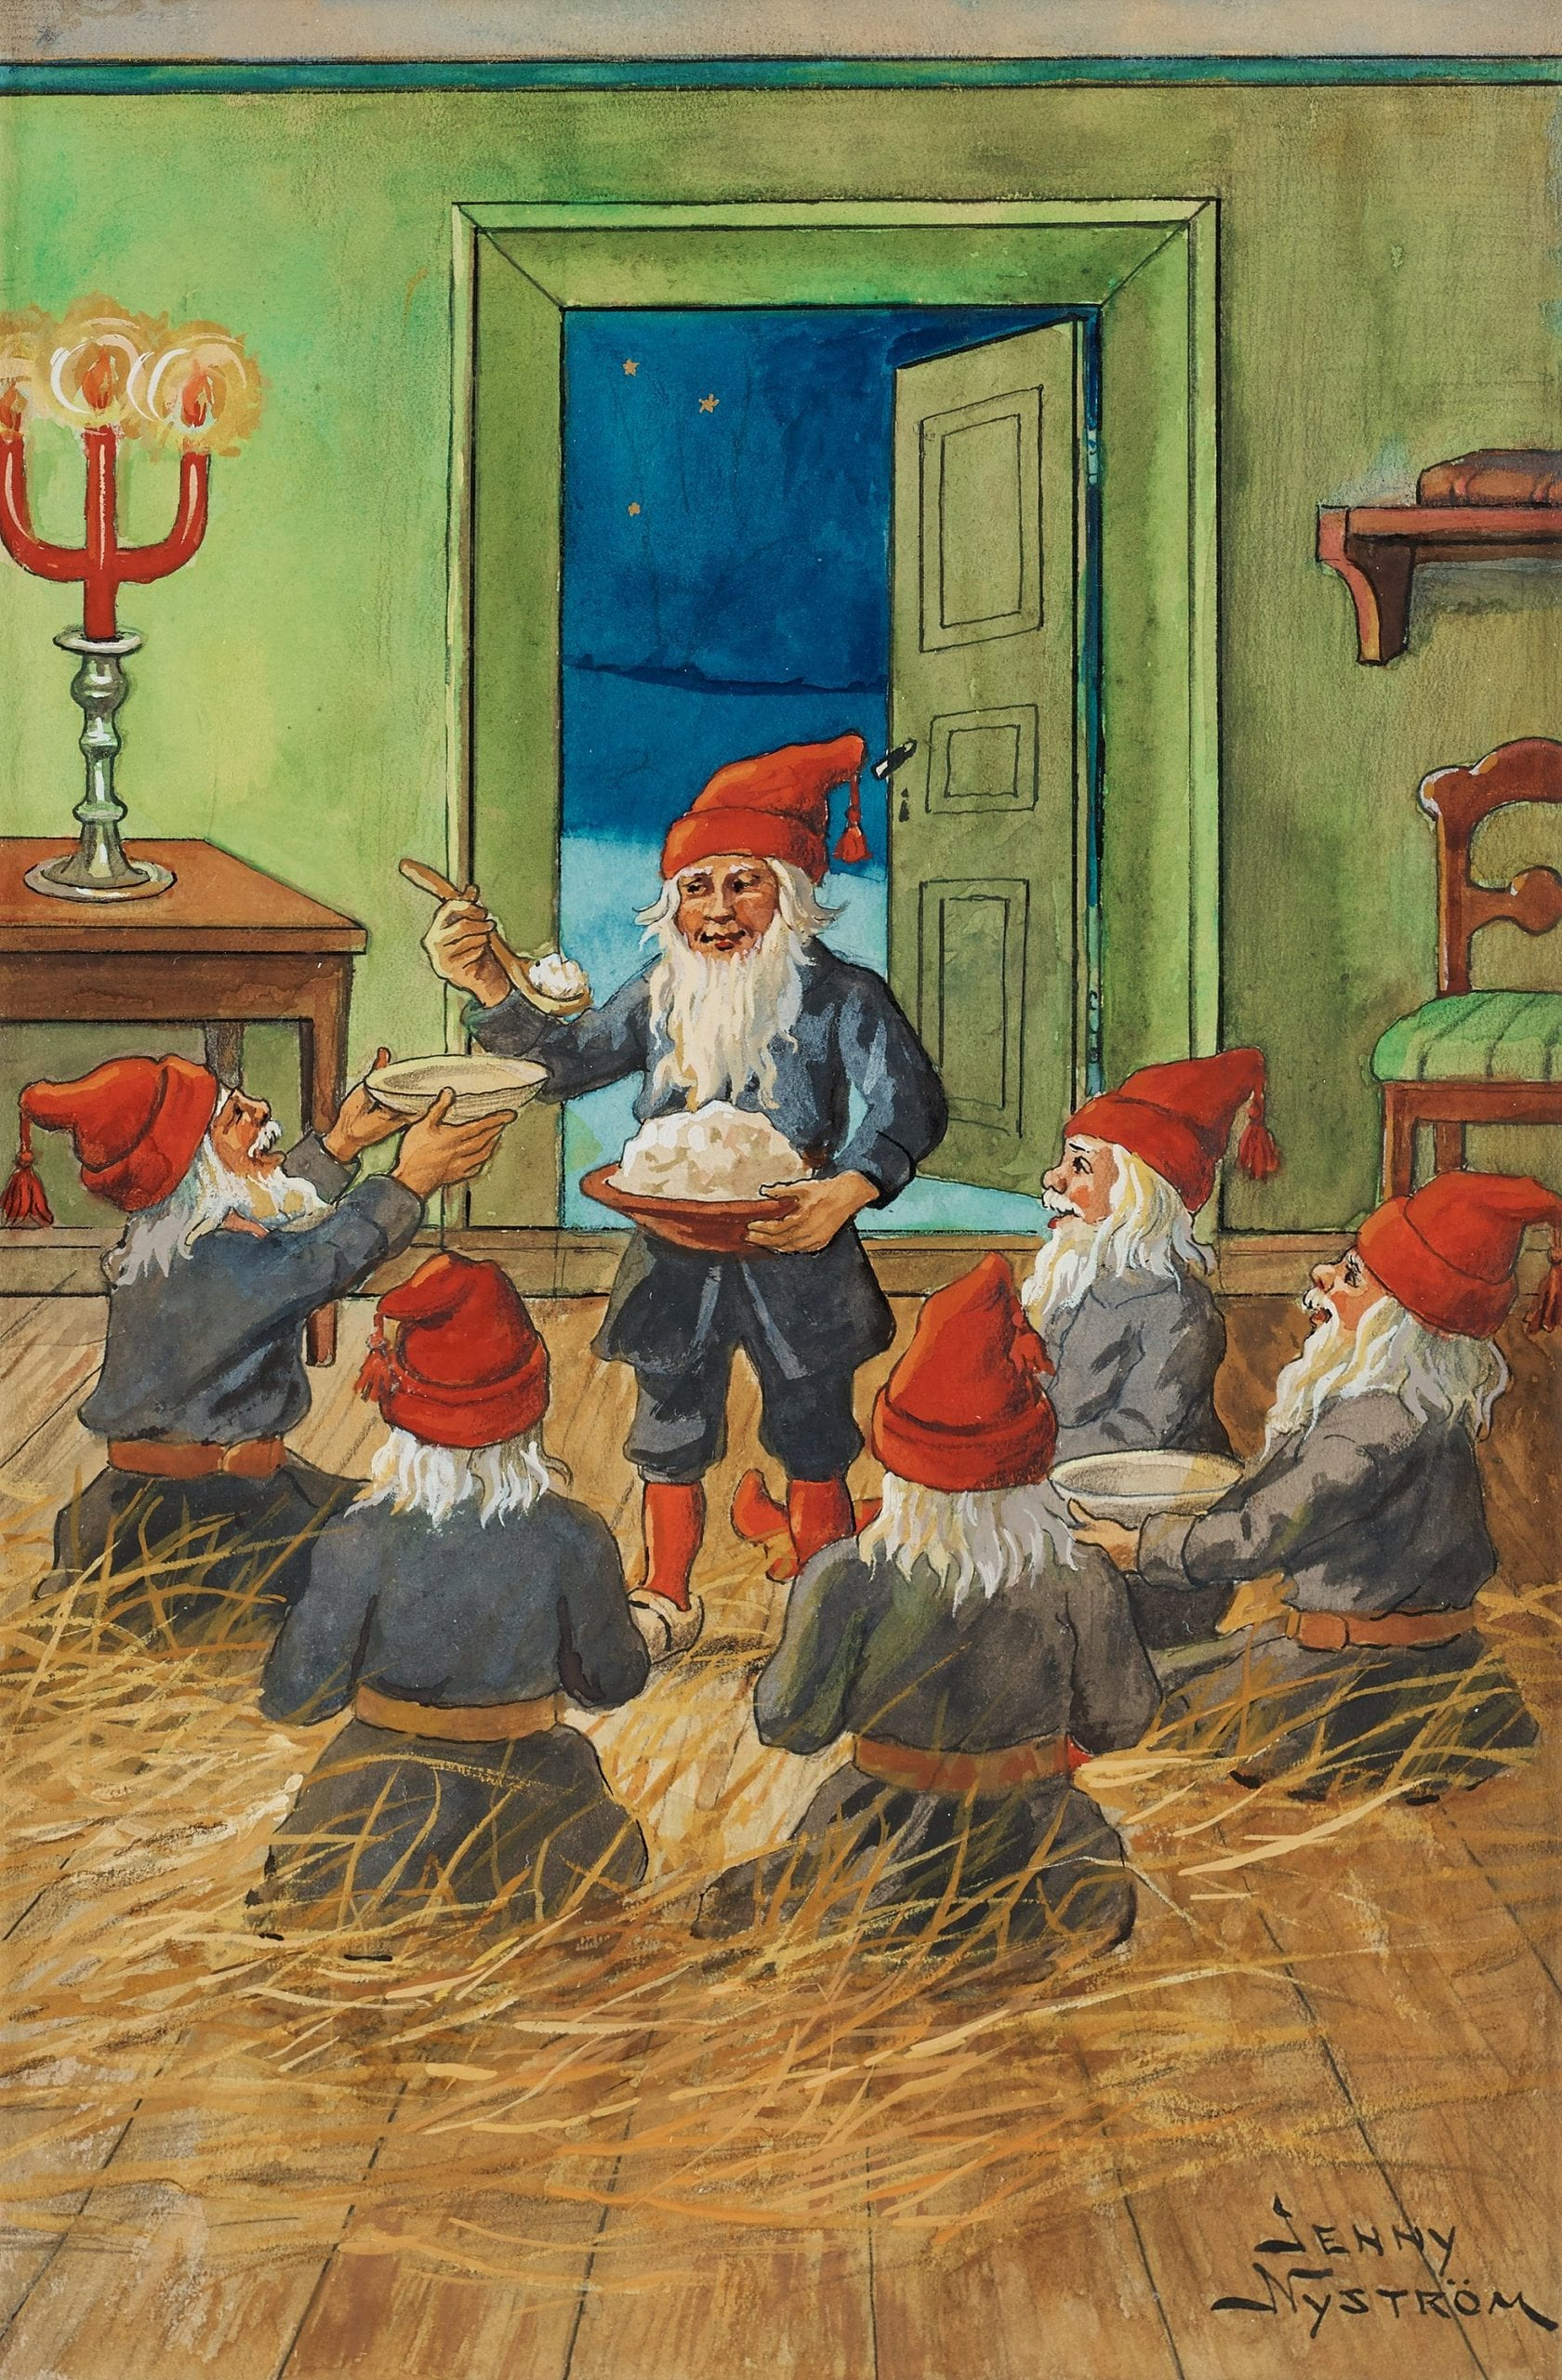 Five tomtes wearing a red top hat, a grey coat and a leather belt, sit in a circle on a floor covered with hay. In the middle is another tomte holding a bowl of porridge that he serves.